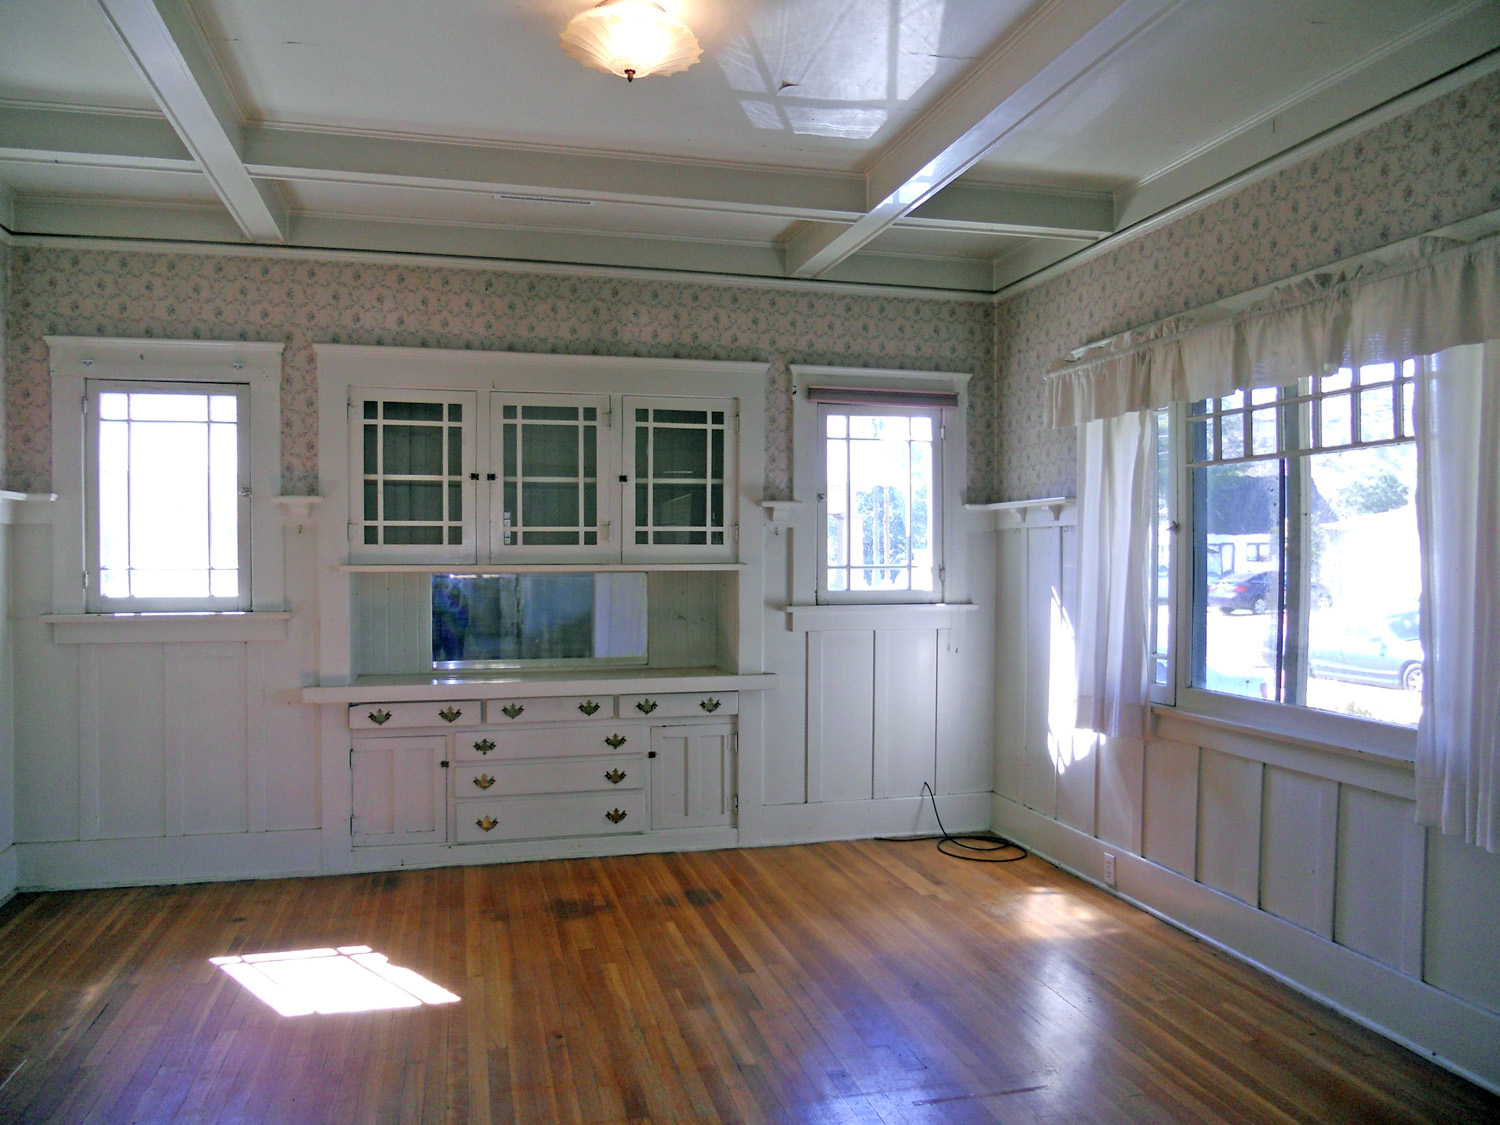 Formal Dining Room With Built In Hutch Plate Rails Original Hardwood Floors